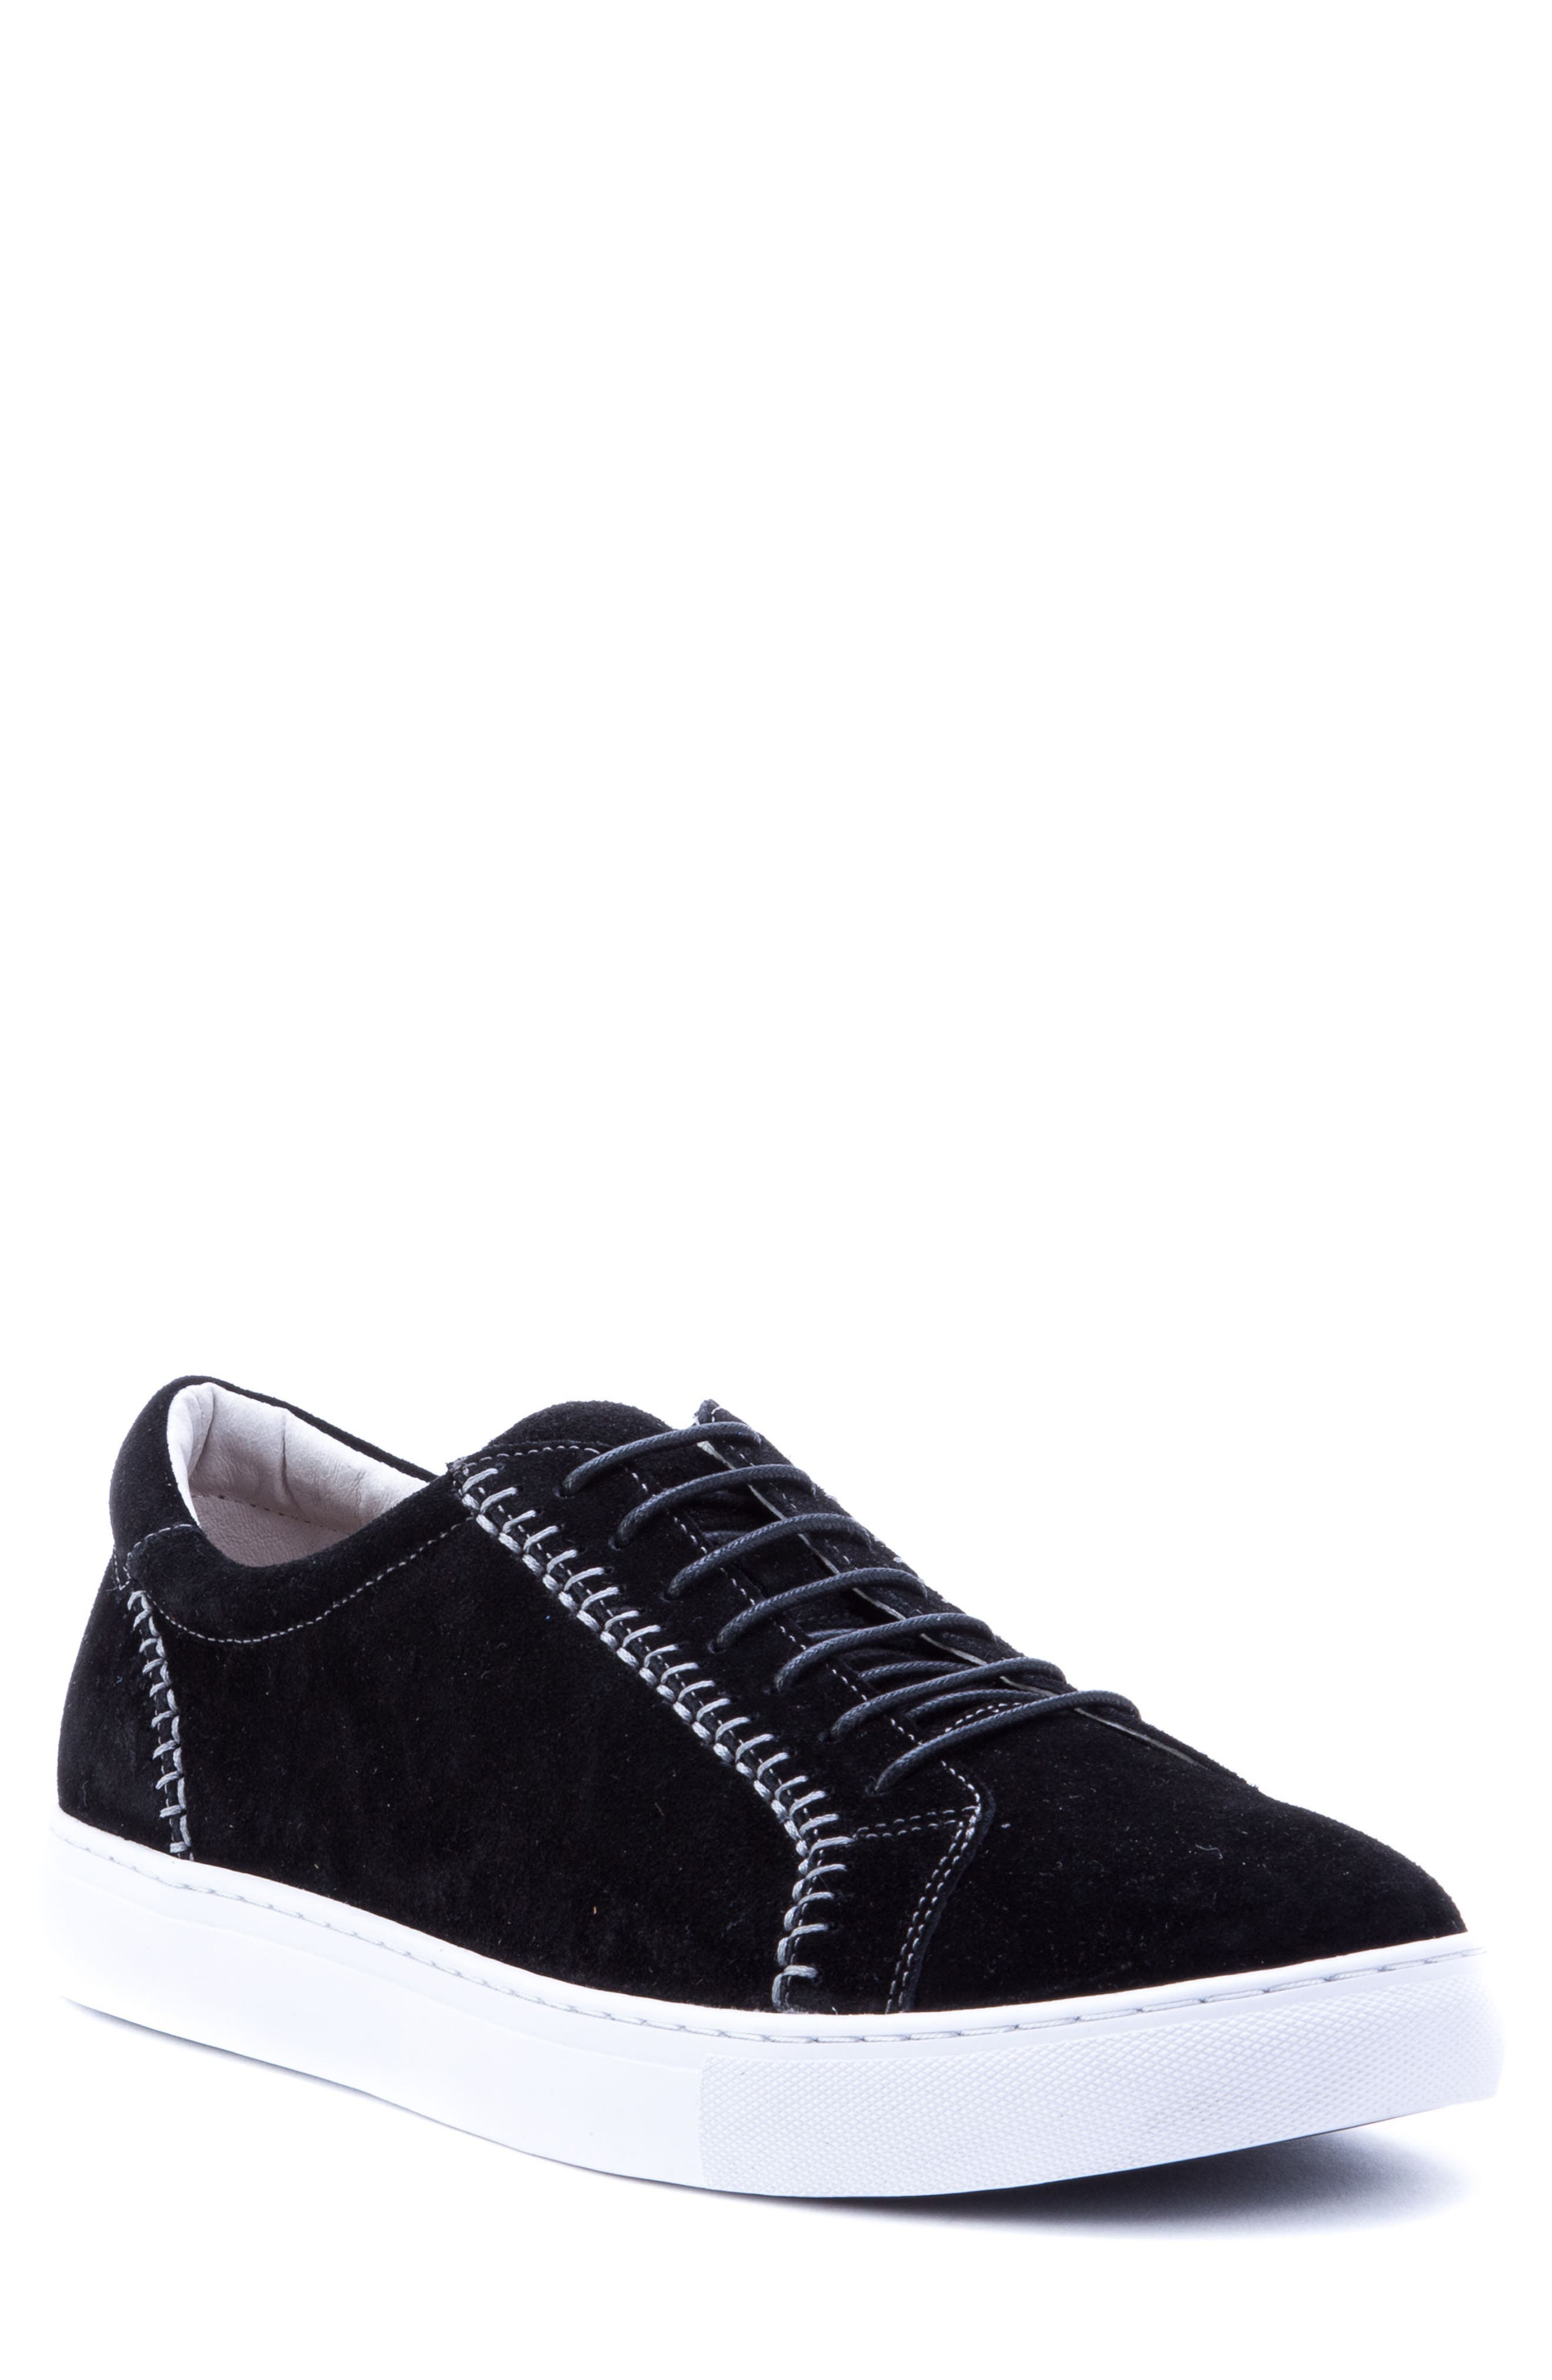 Calle Low Top Sneaker,                             Main thumbnail 1, color,                             001